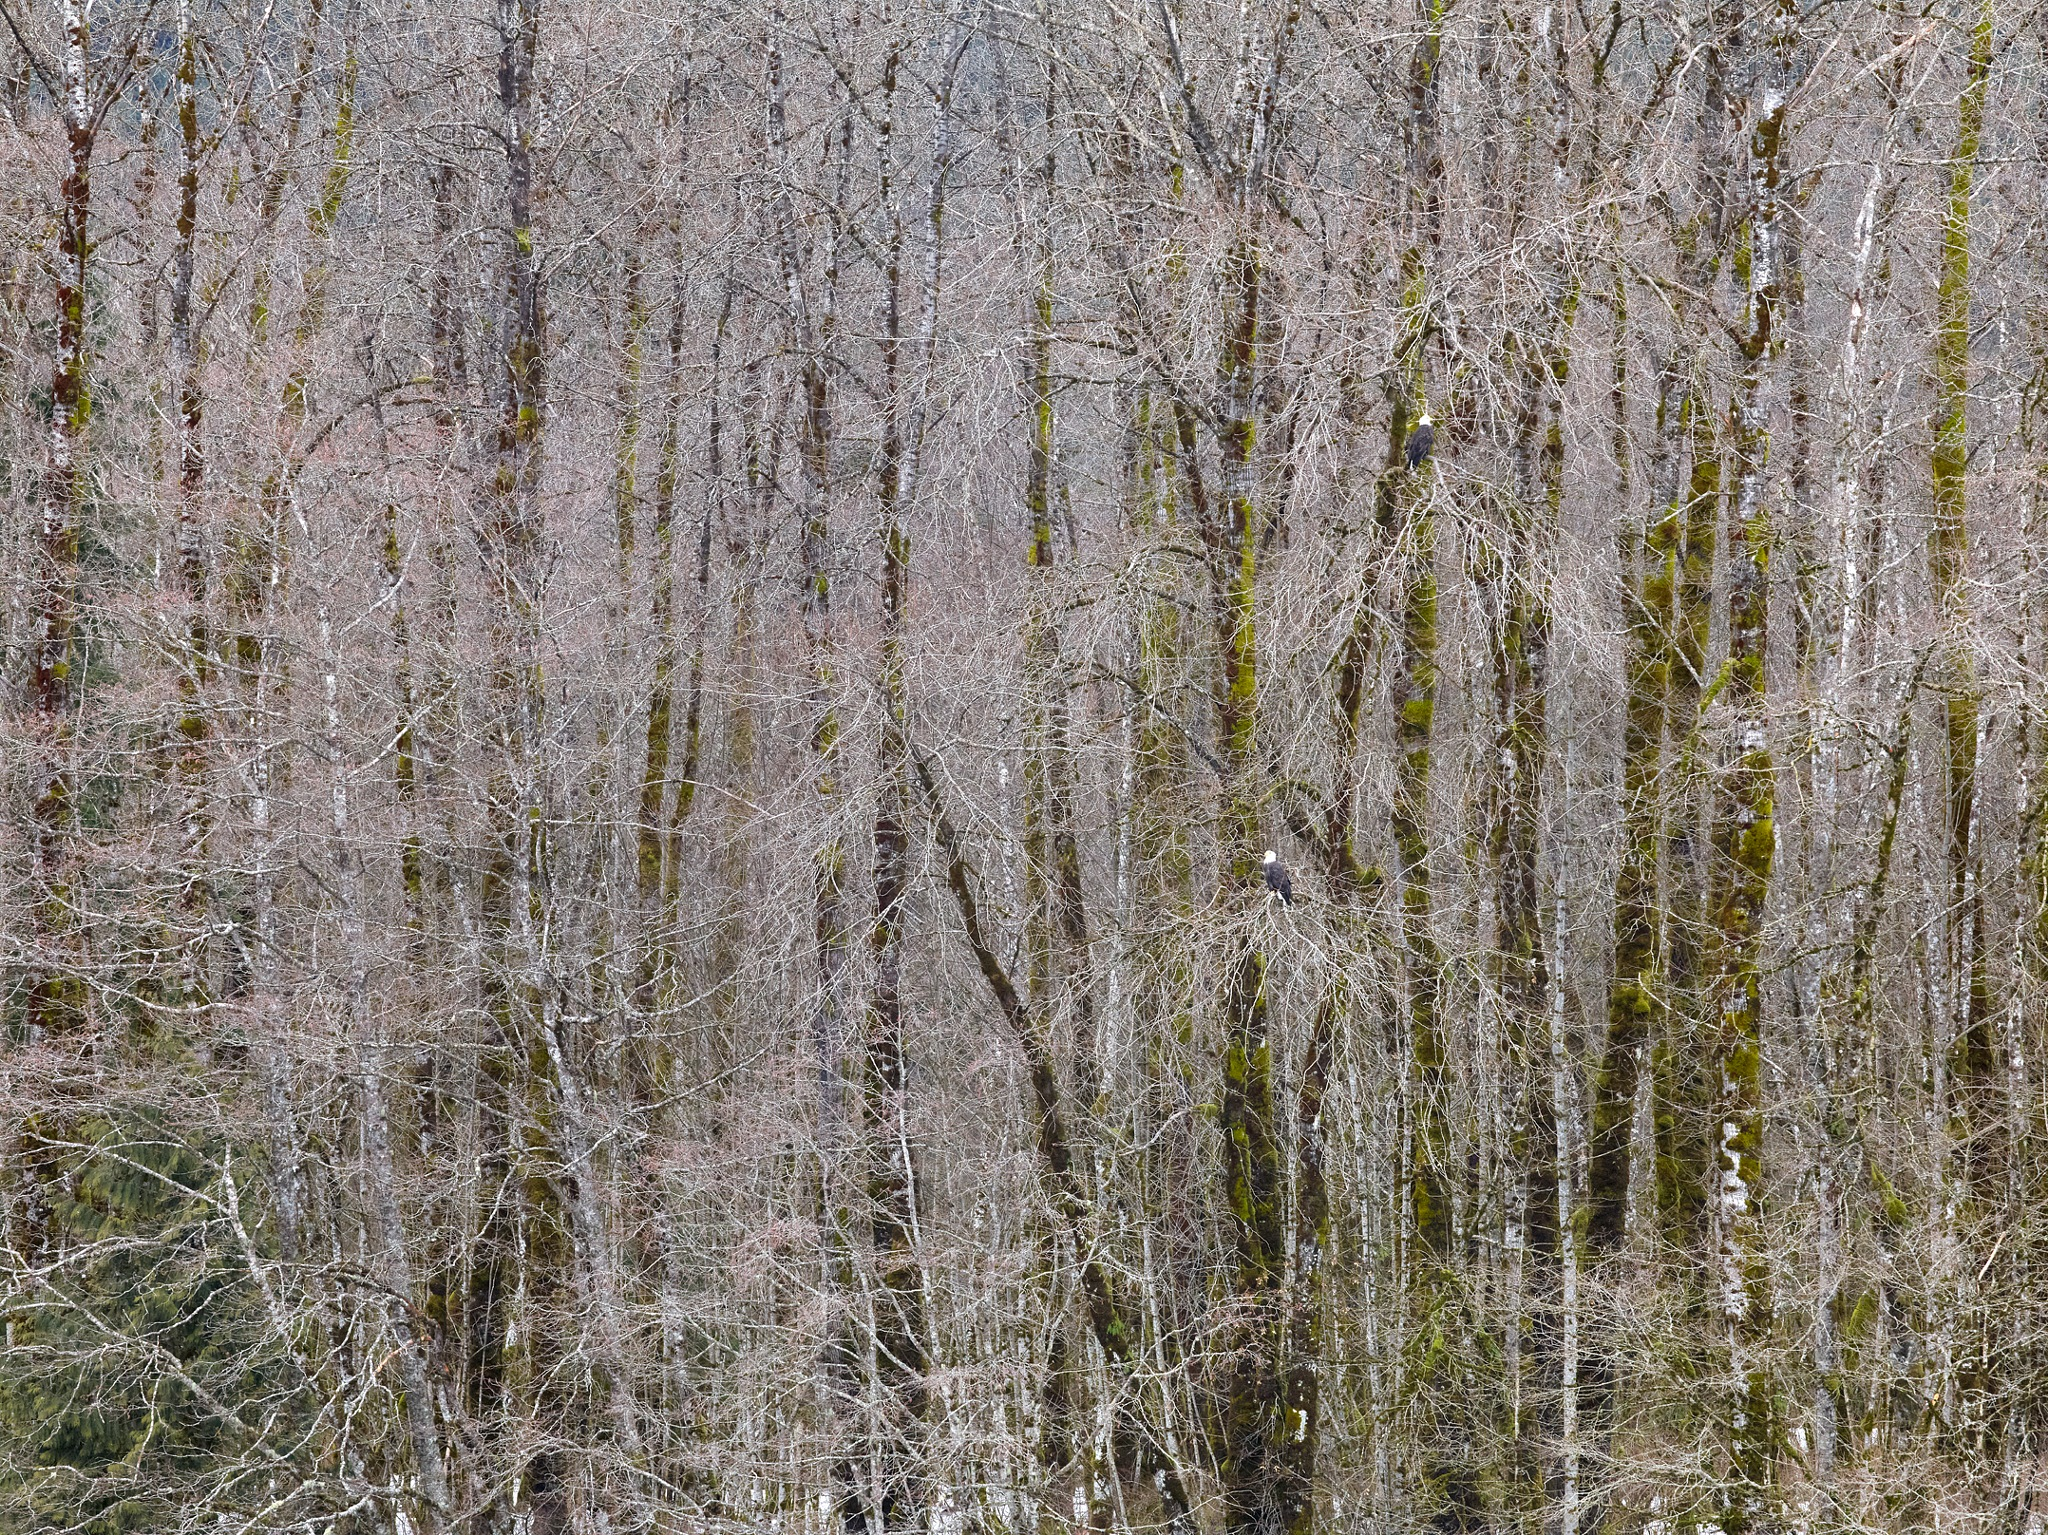 Black Cottonwood Trees and Eagles by MichaelEaston